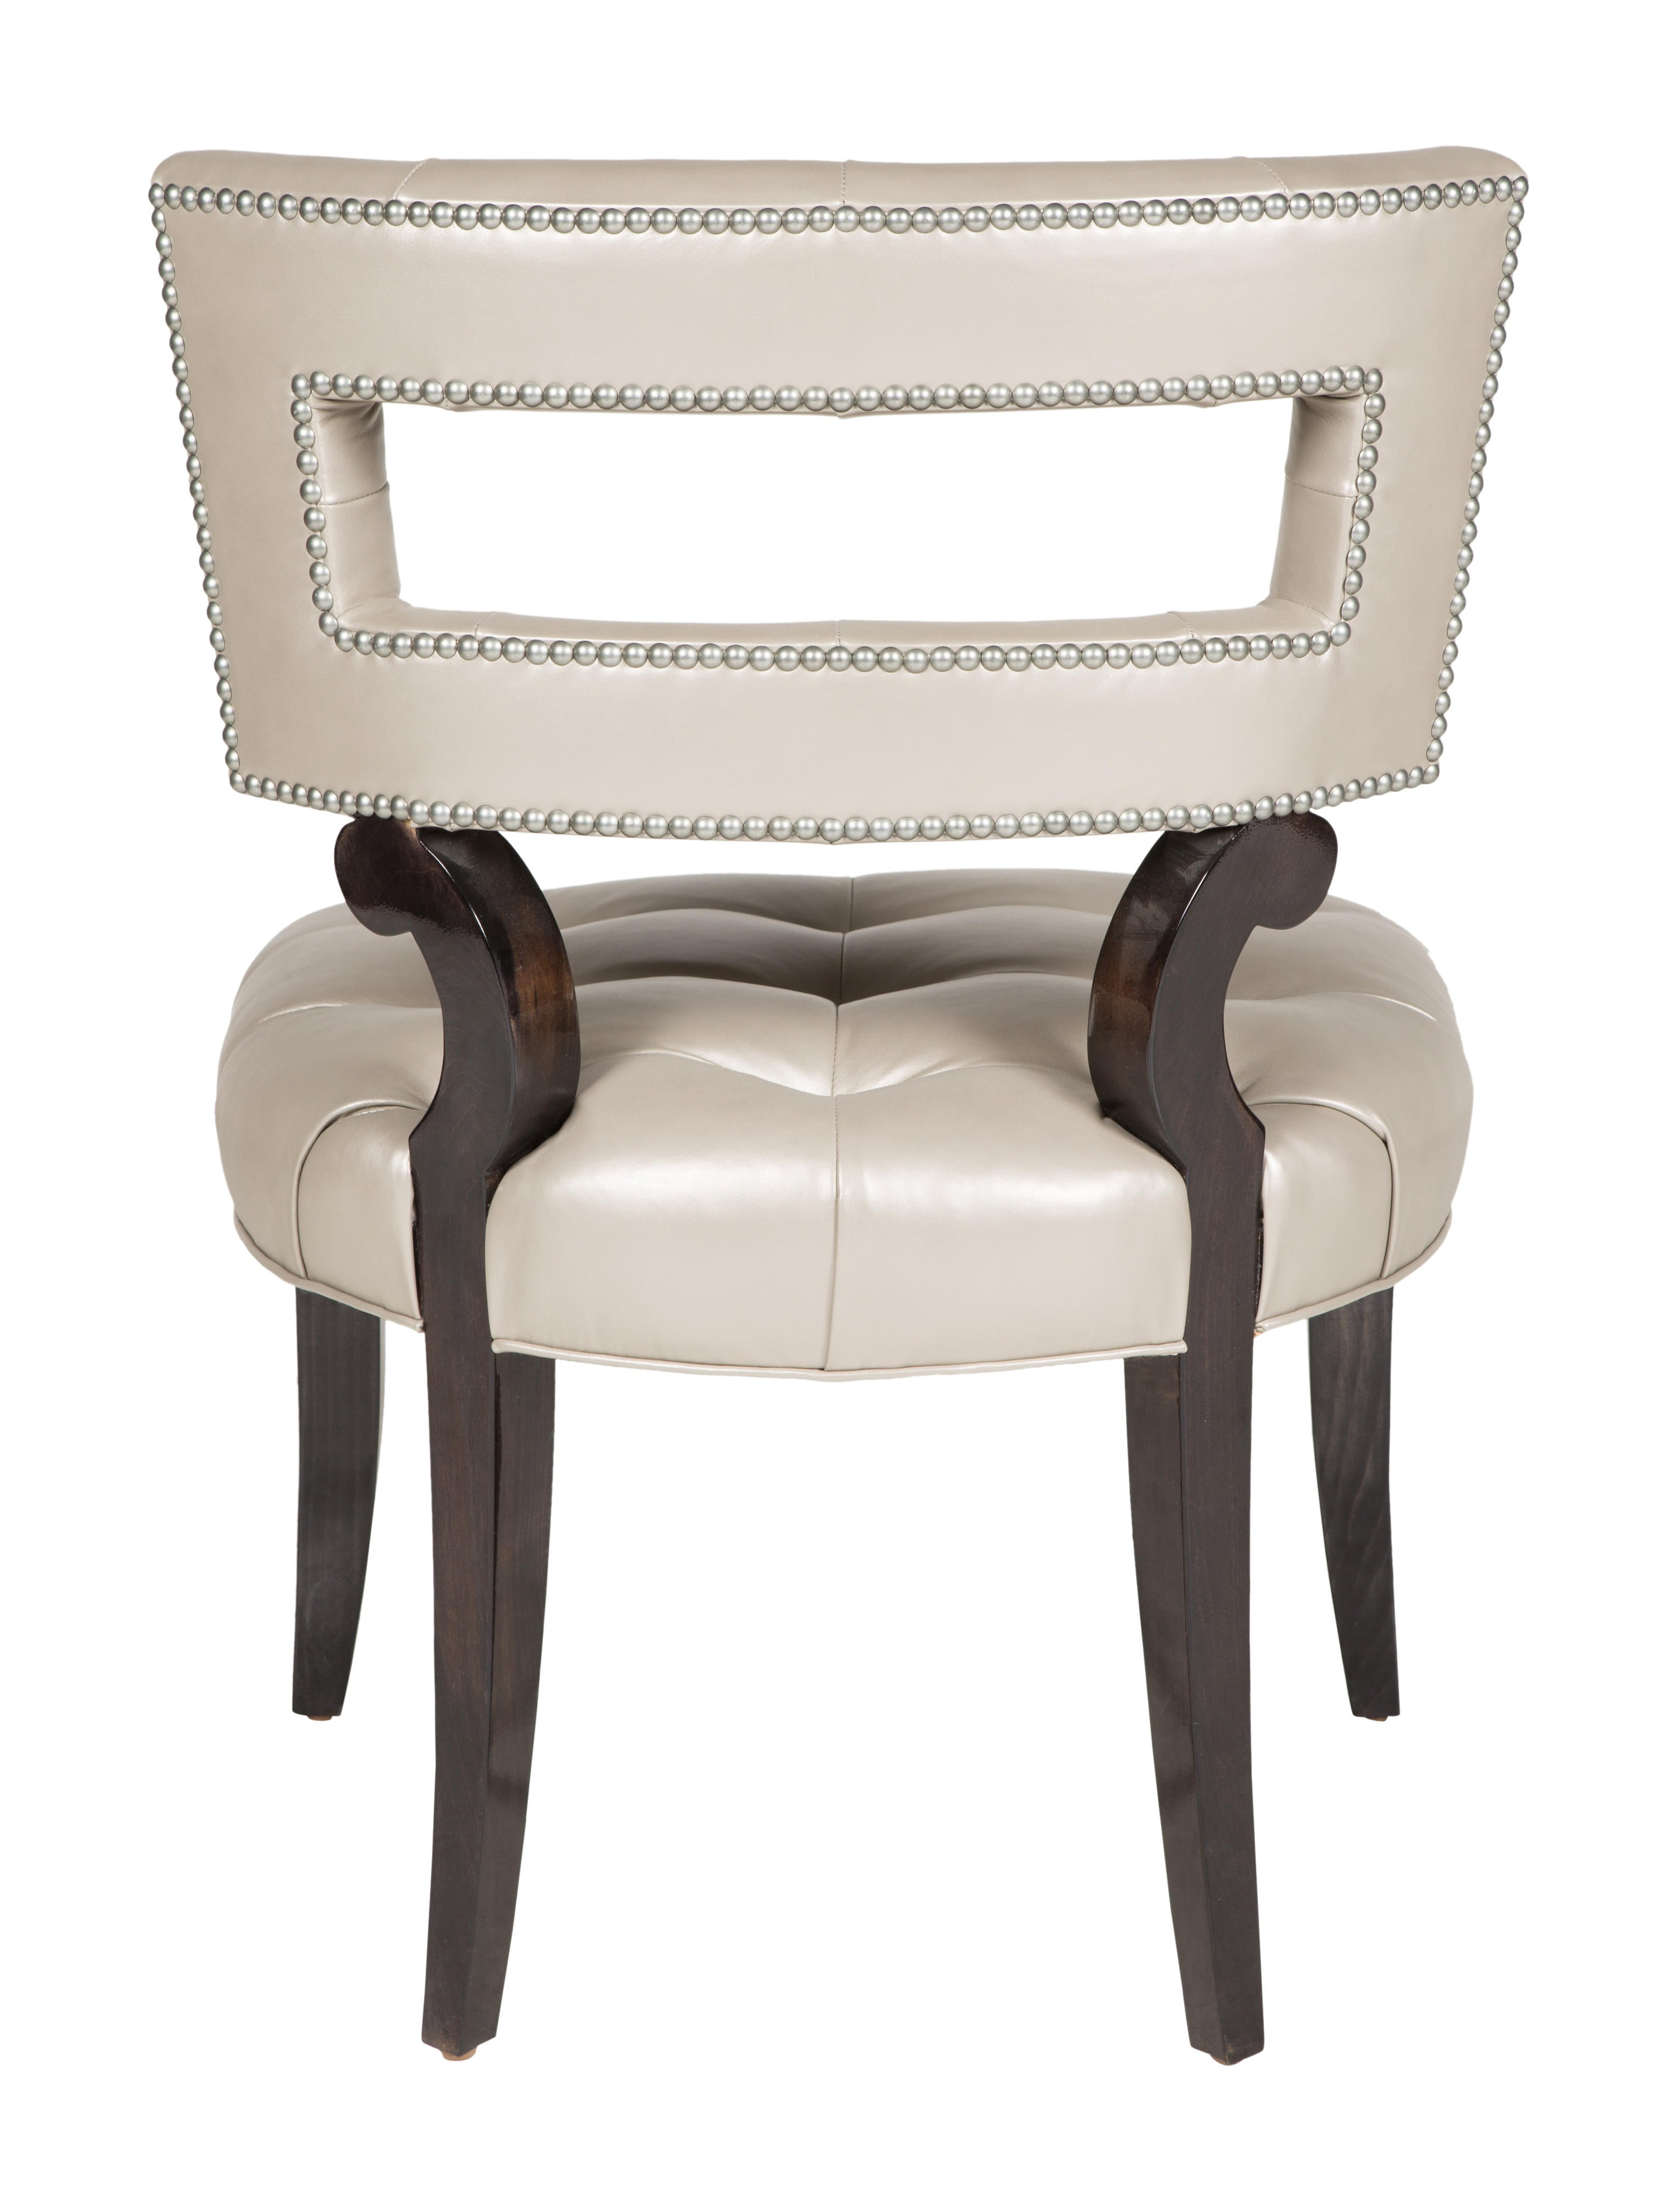 Tufted leather dining chairs - Tufted Leather Dining Chairs